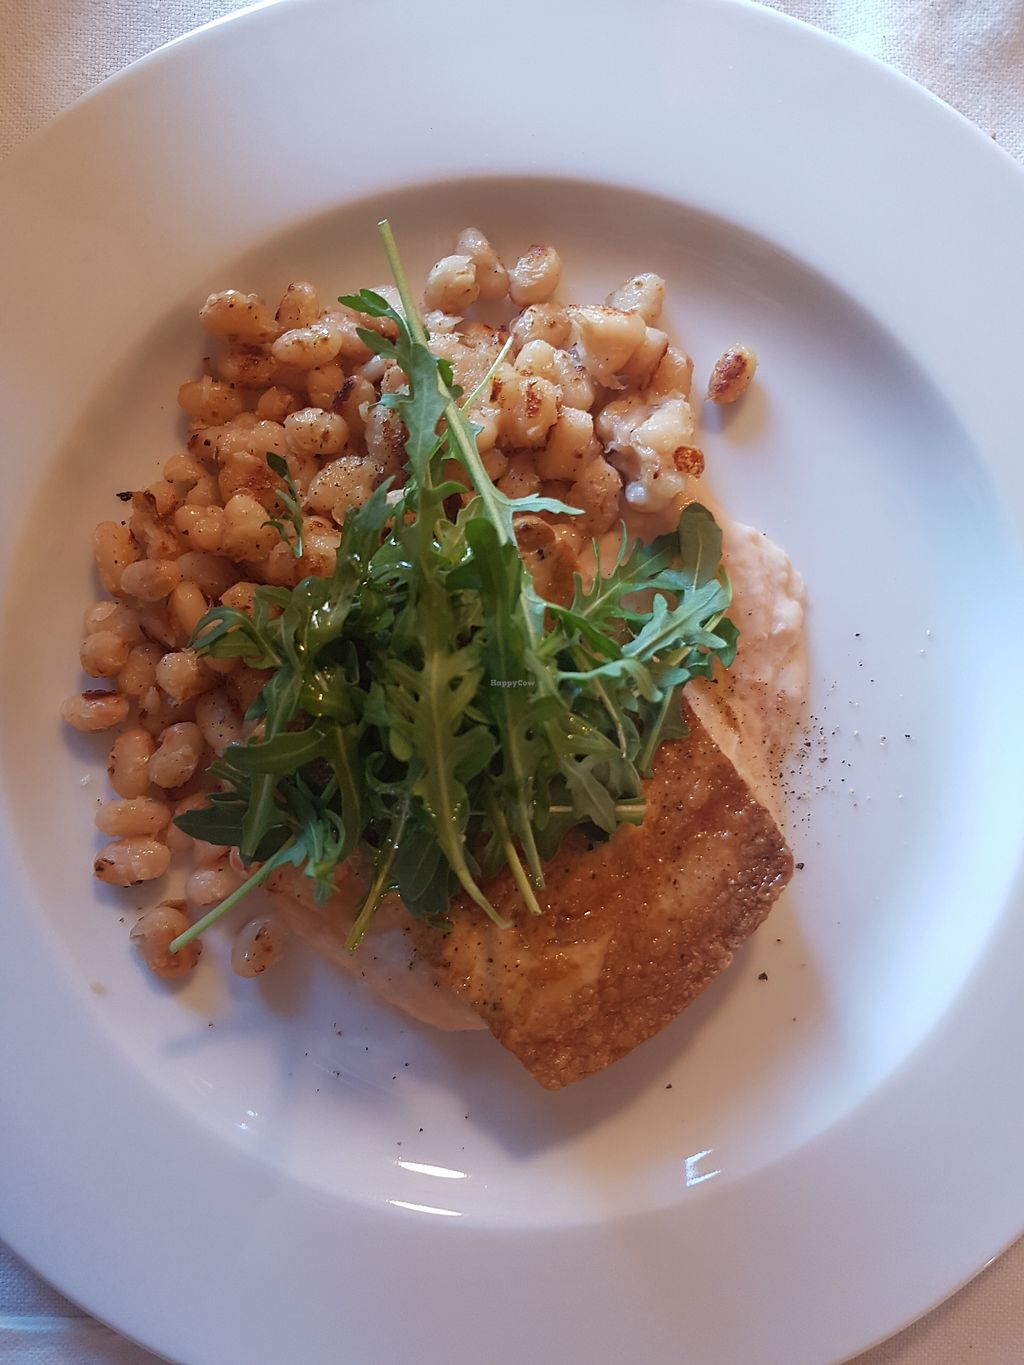 """Photo of Casa Albets  by <a href=""""/members/profile/estefinparis"""">estefinparis</a> <br/>Tofu and white beans  <br/> January 4, 2018  - <a href='/contact/abuse/image/96151/343063'>Report</a>"""